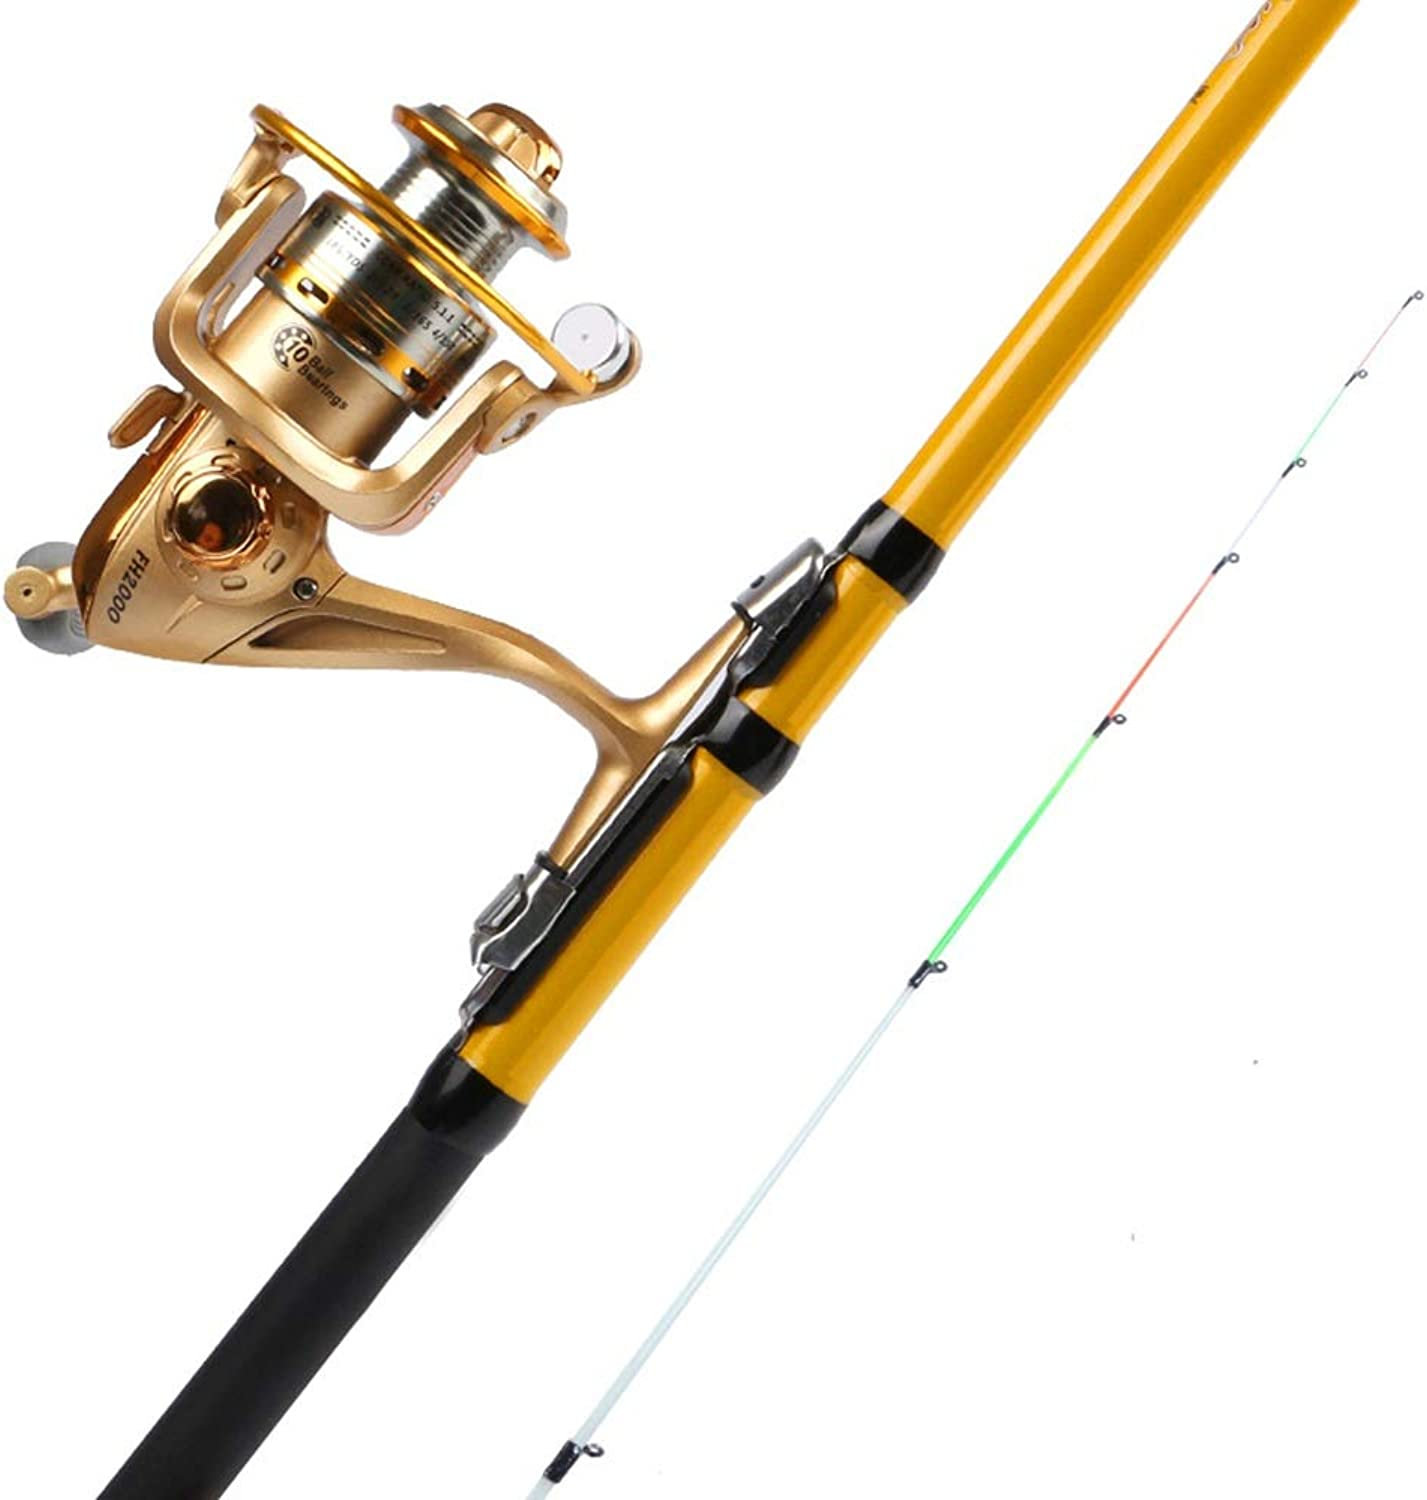 MAHZONG Spinning Rods Telescopic Fishing Rod, Fishing Rod, 1.5 M, 1.8 M, 2.1 M Carbon Fiber Fishing Rod, Suitable for Outdoor Fishing